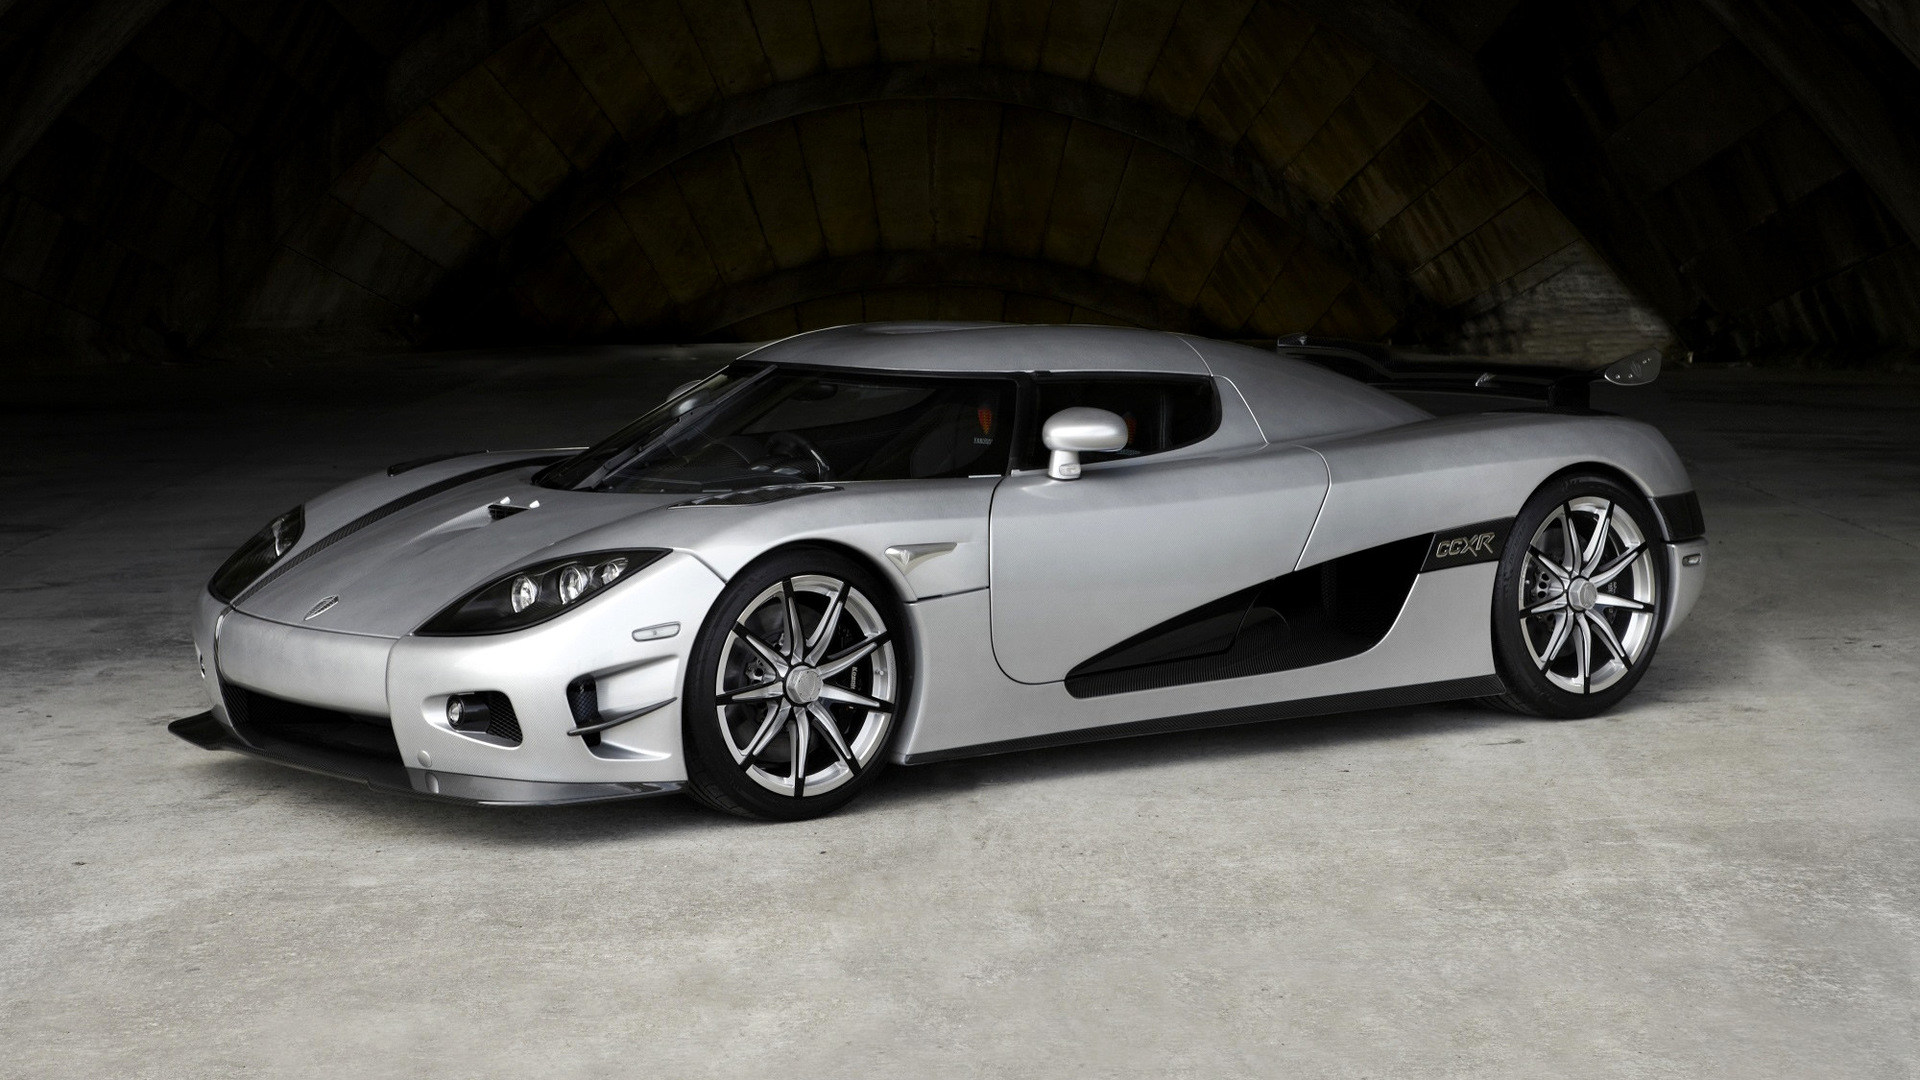 Koenigsegg CCXR Trevita (2009) Wallpapers And HD Images